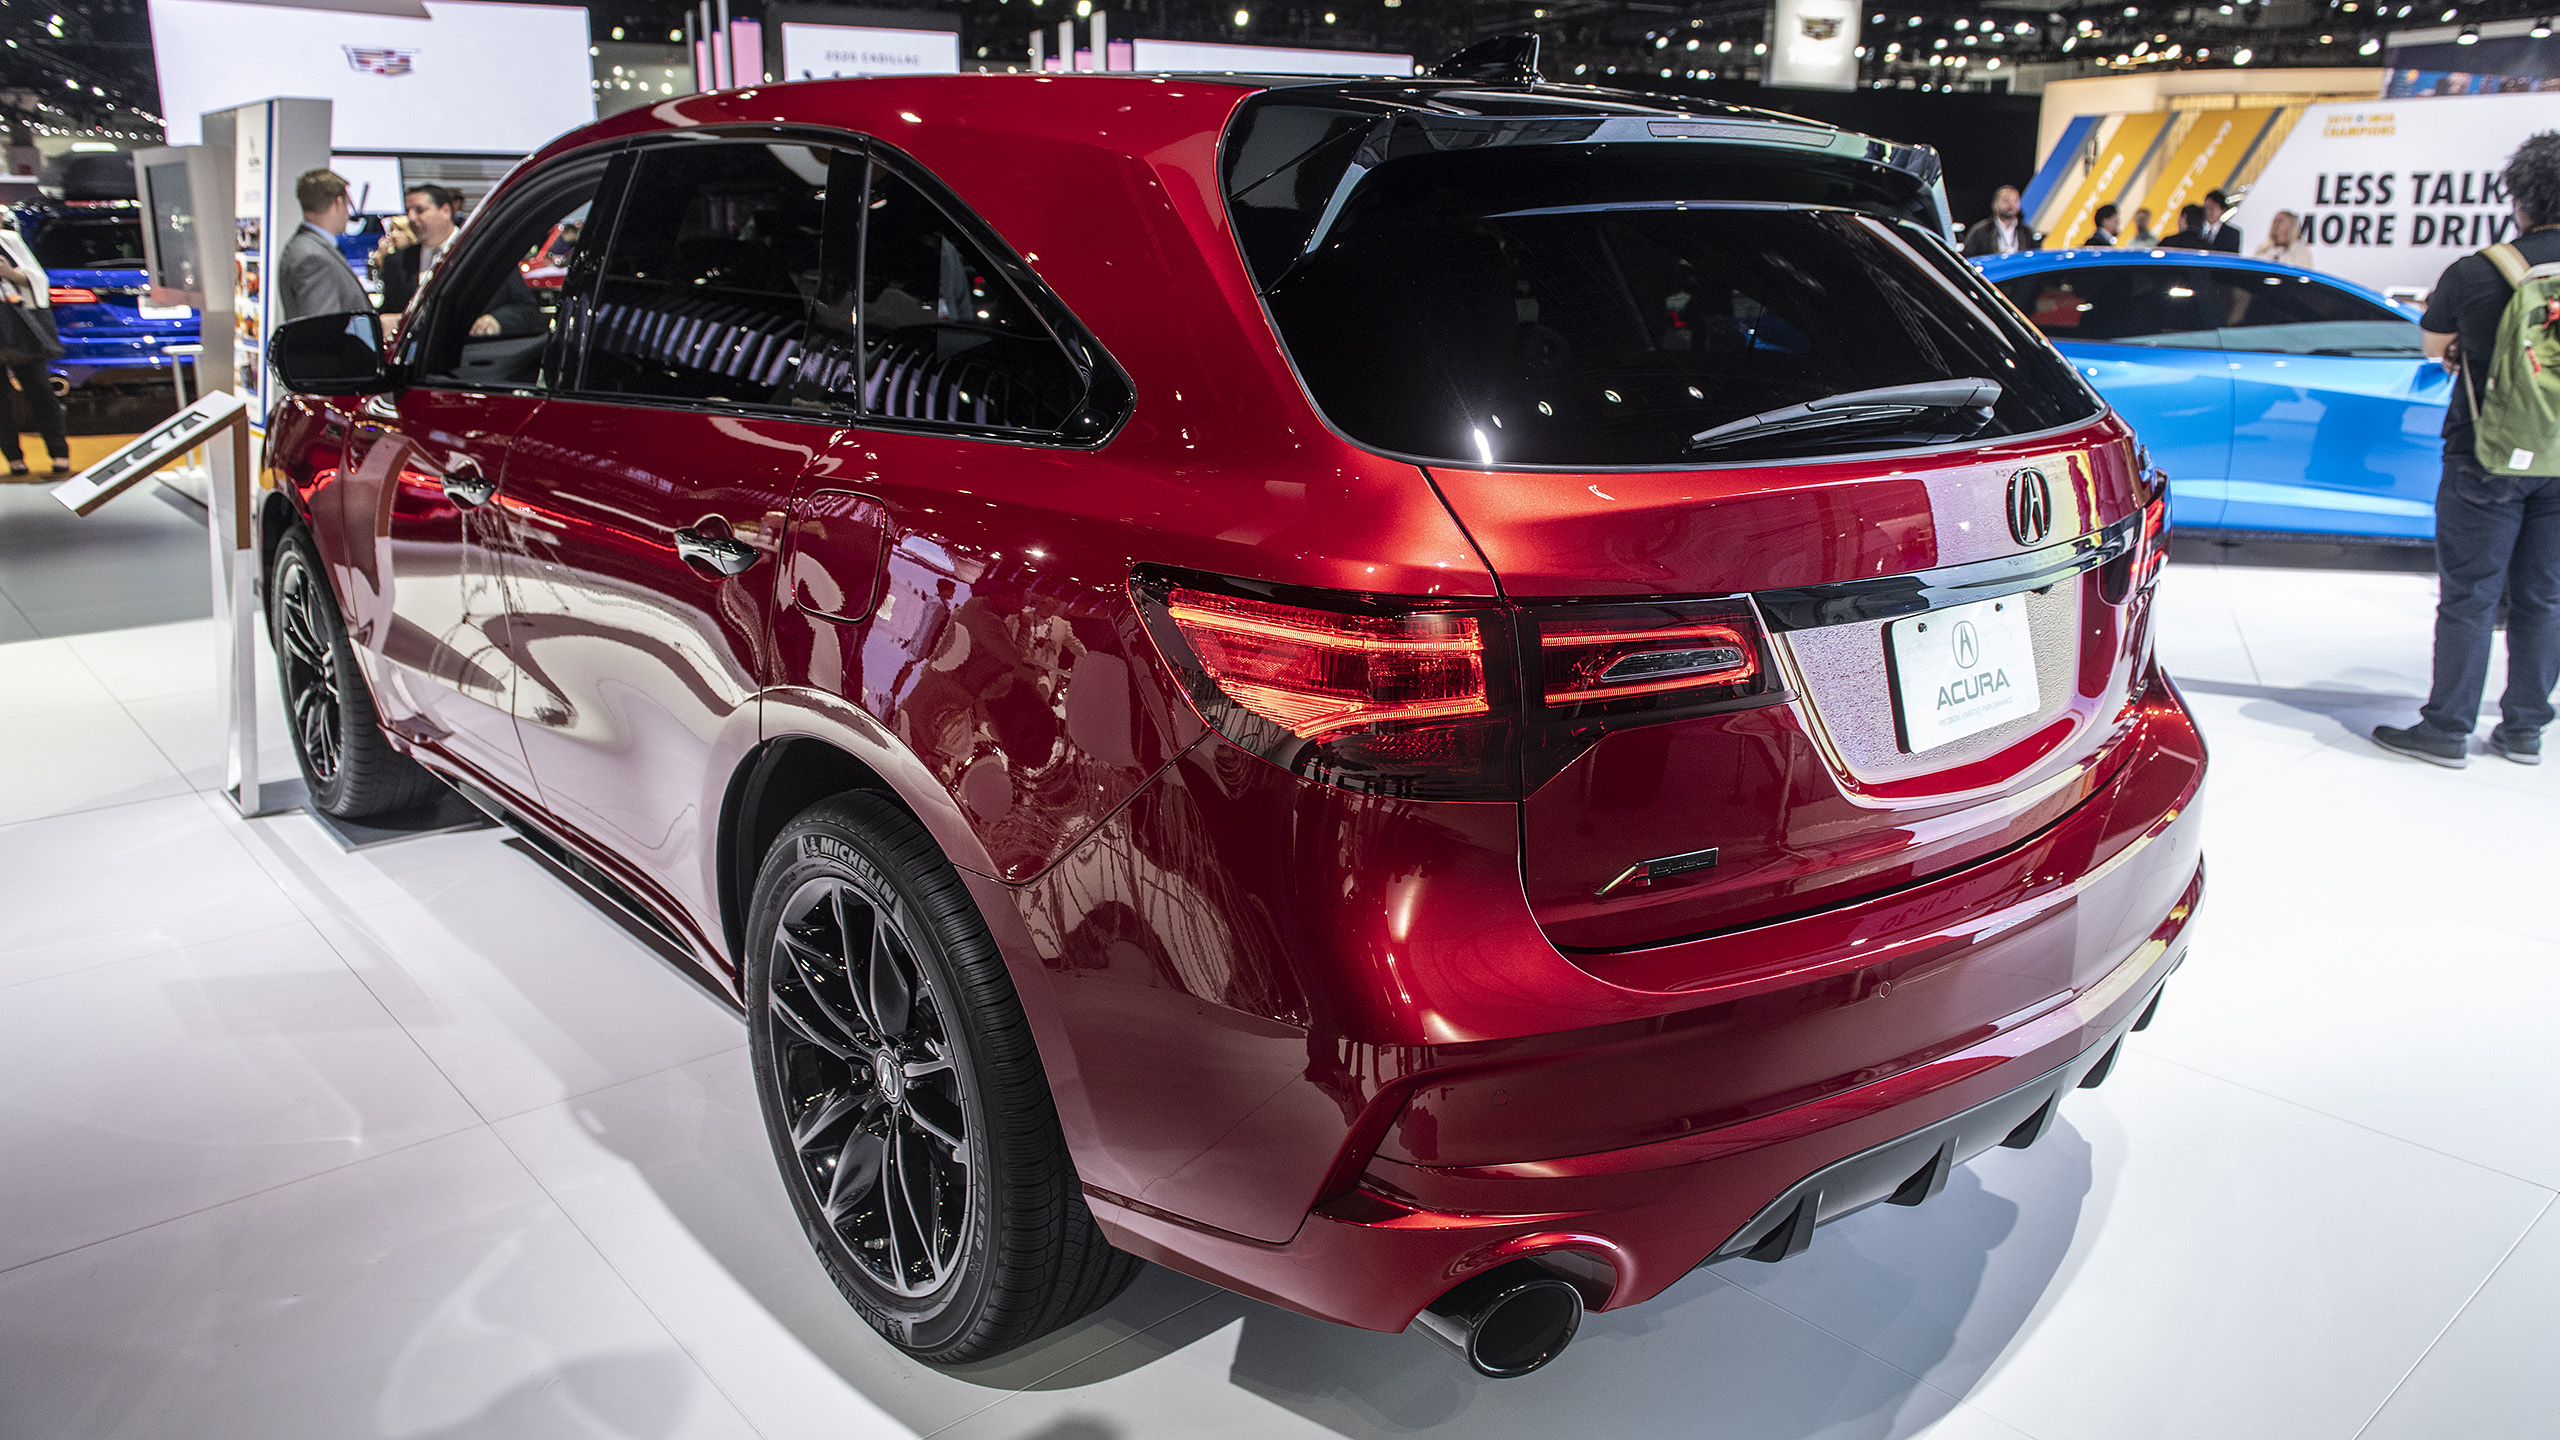 Acura Pre Owned >> 2020 Acura MDX PMC Edition coming to L.A. Auto Show | Autoblog